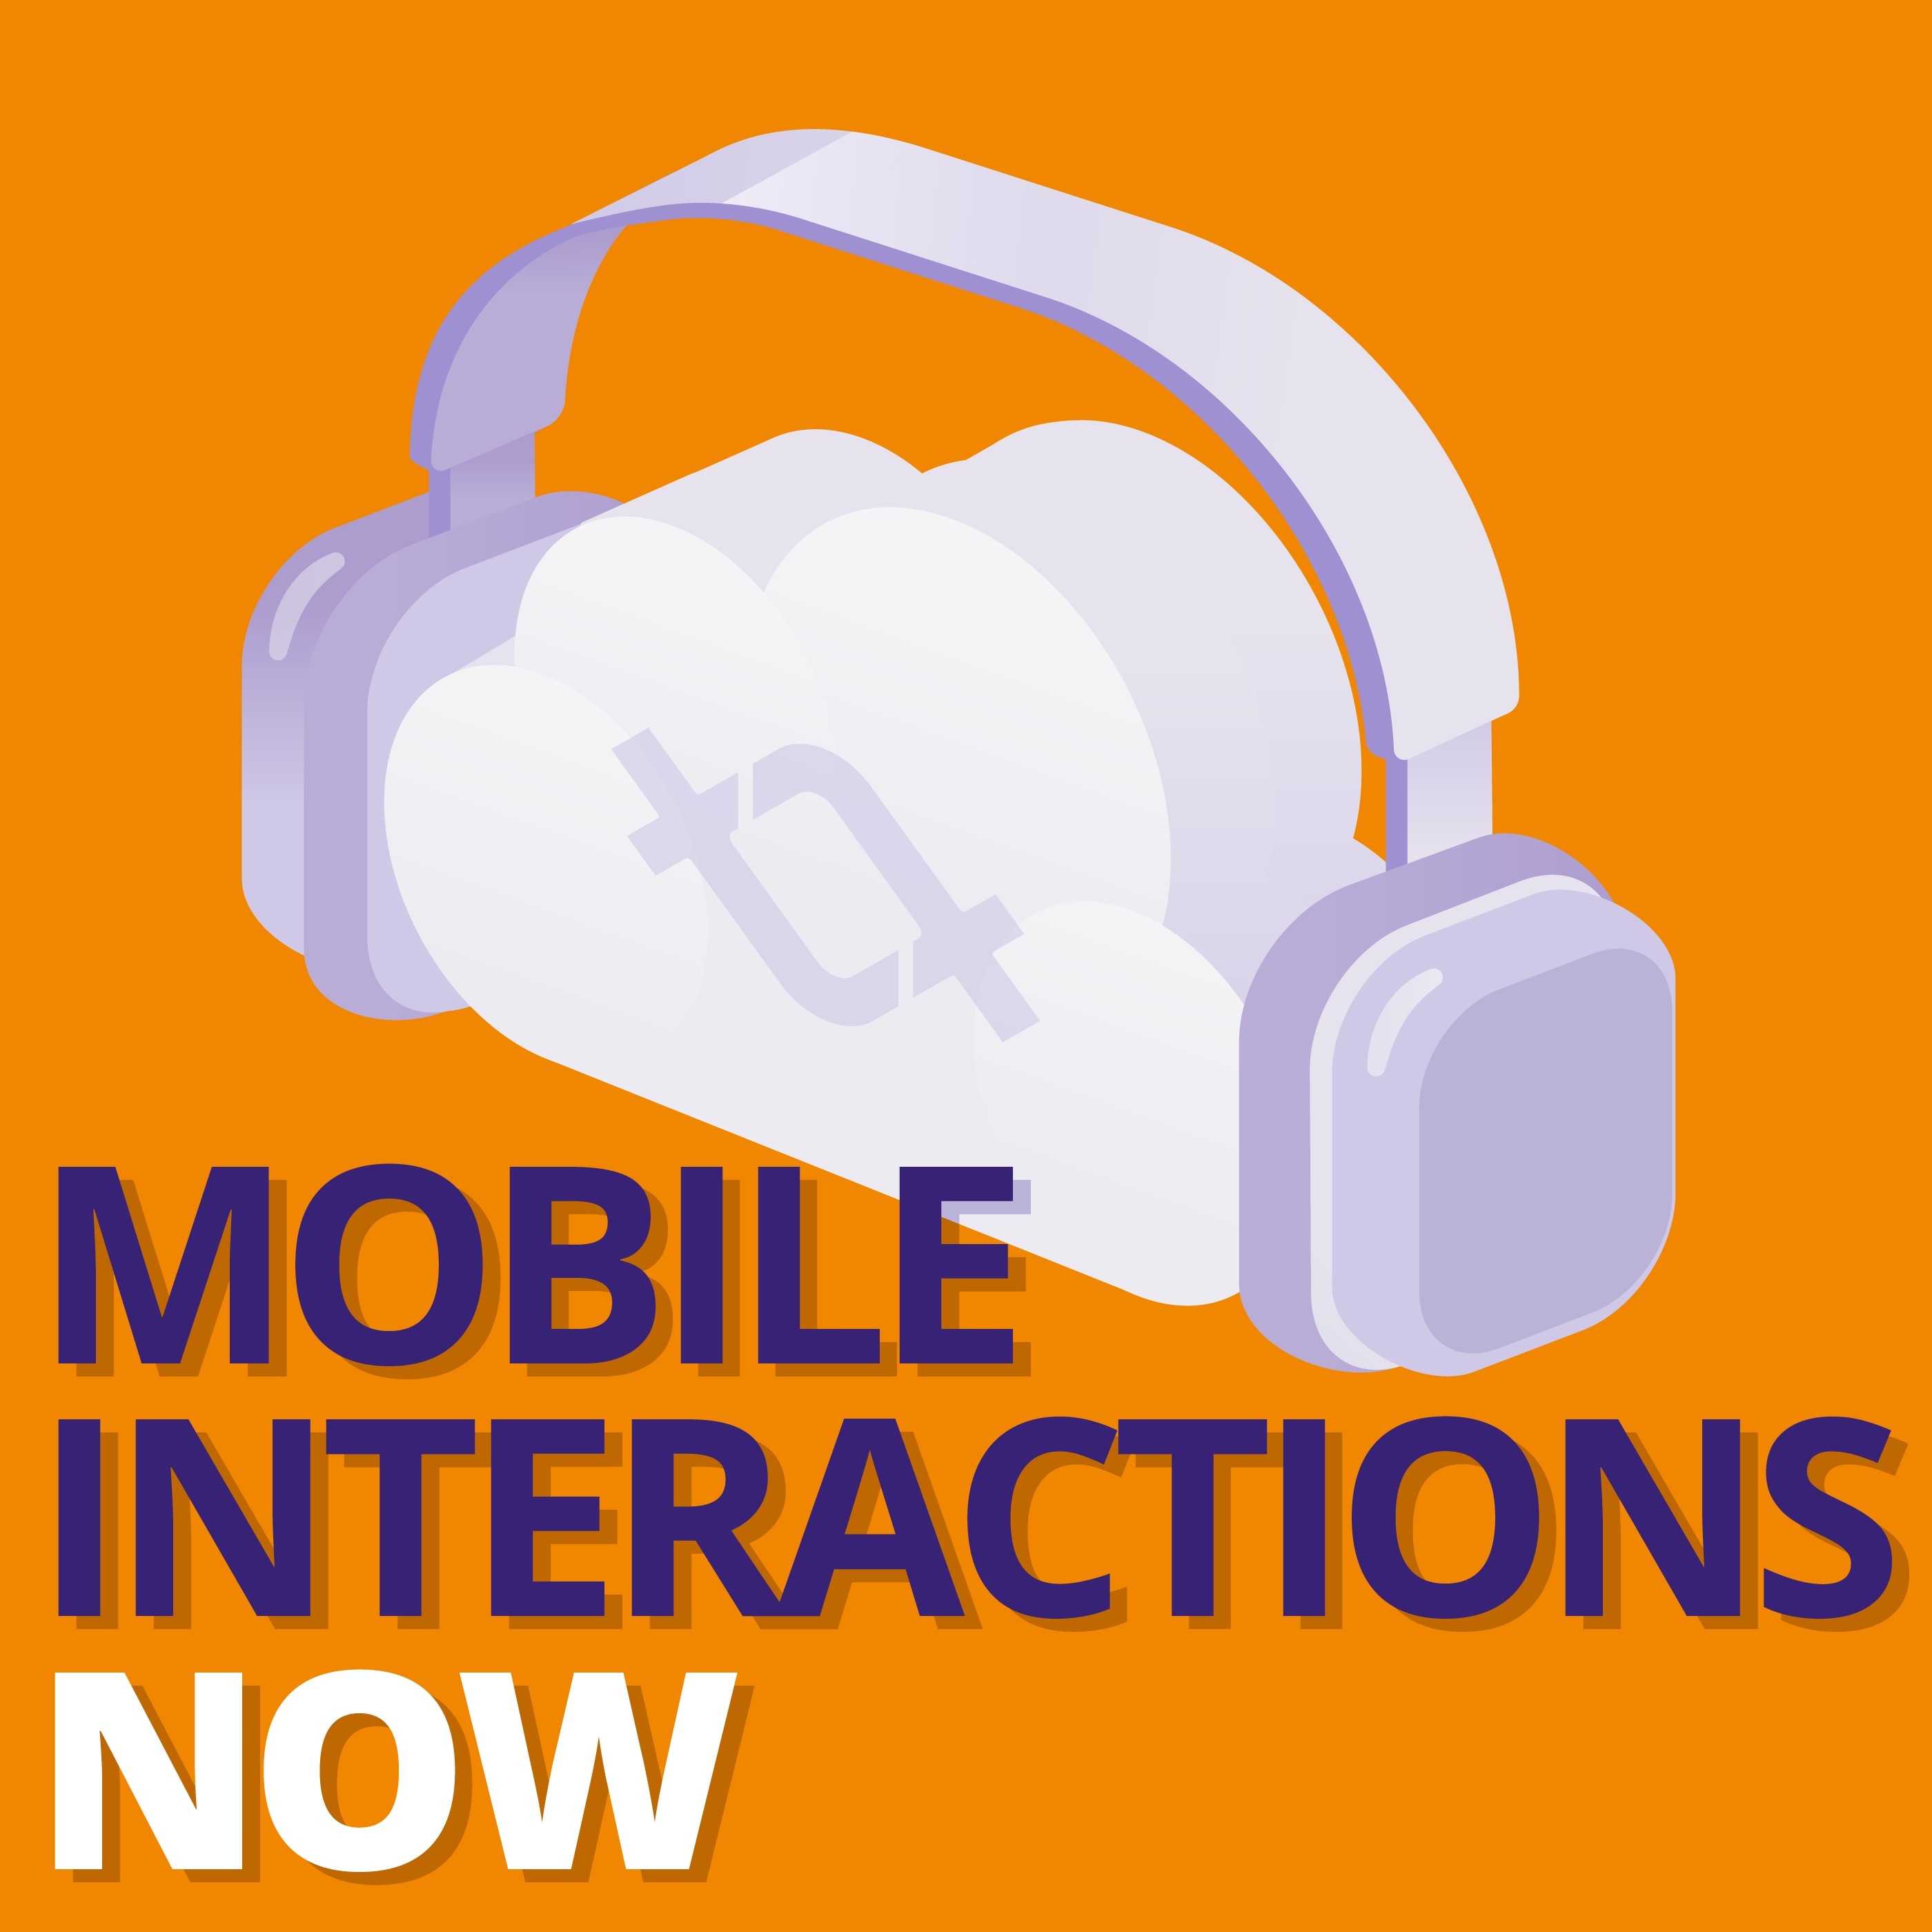 Mobile Interactions Now